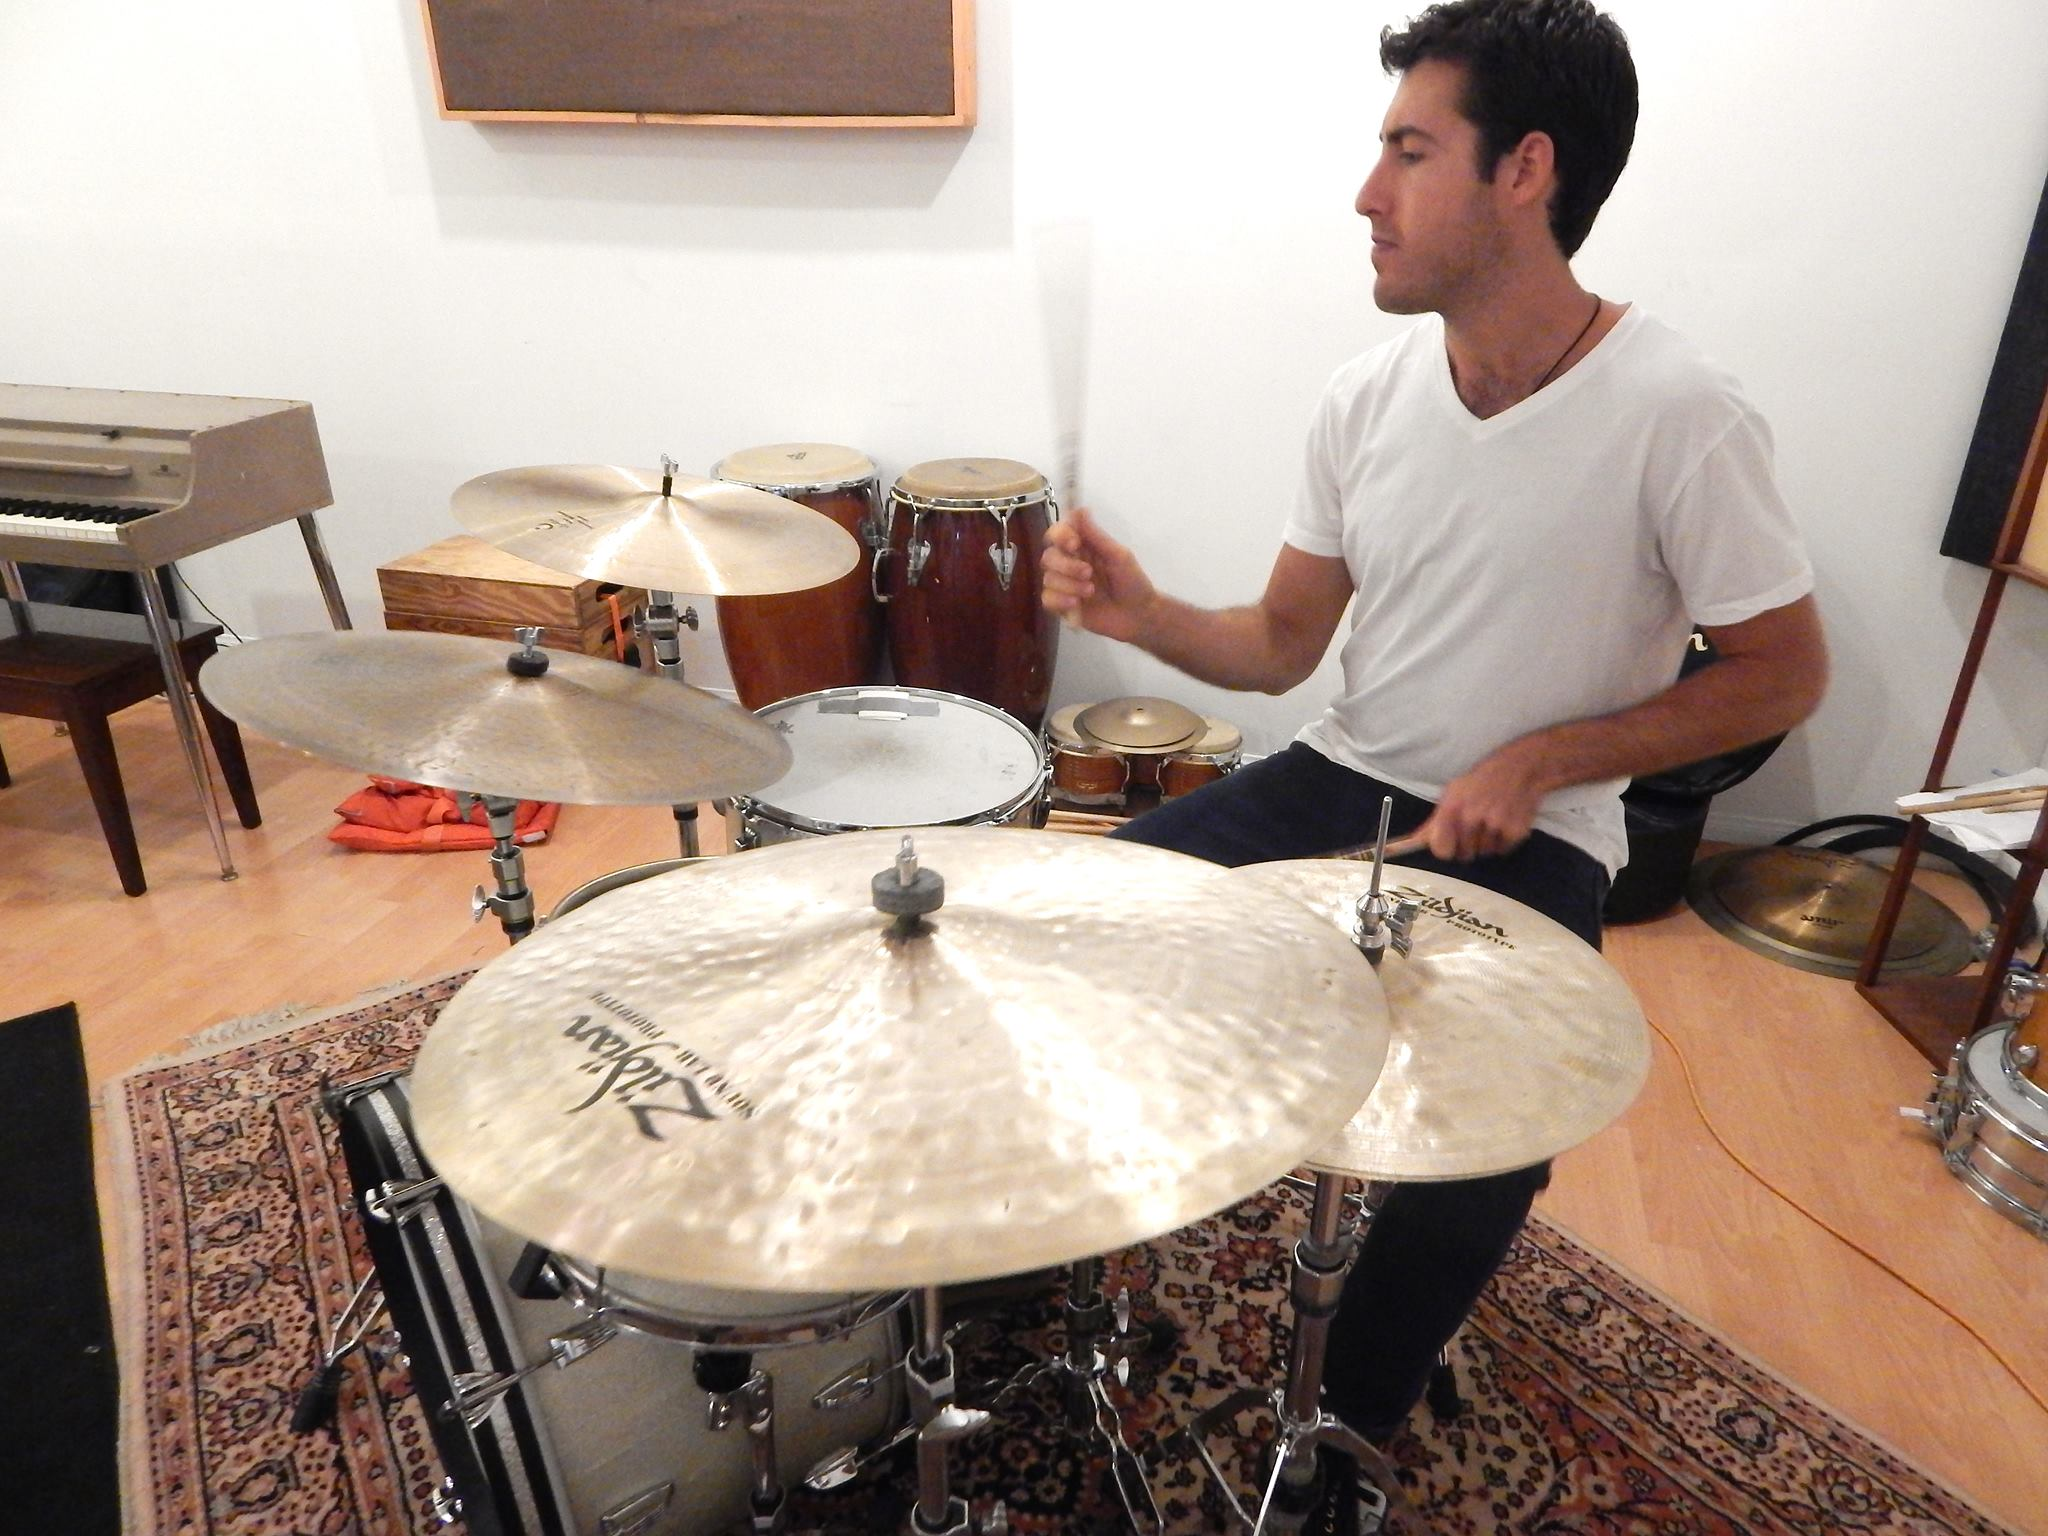 What-does-pocket-mean-drums-drumming-drummers-josh-teitelbaum